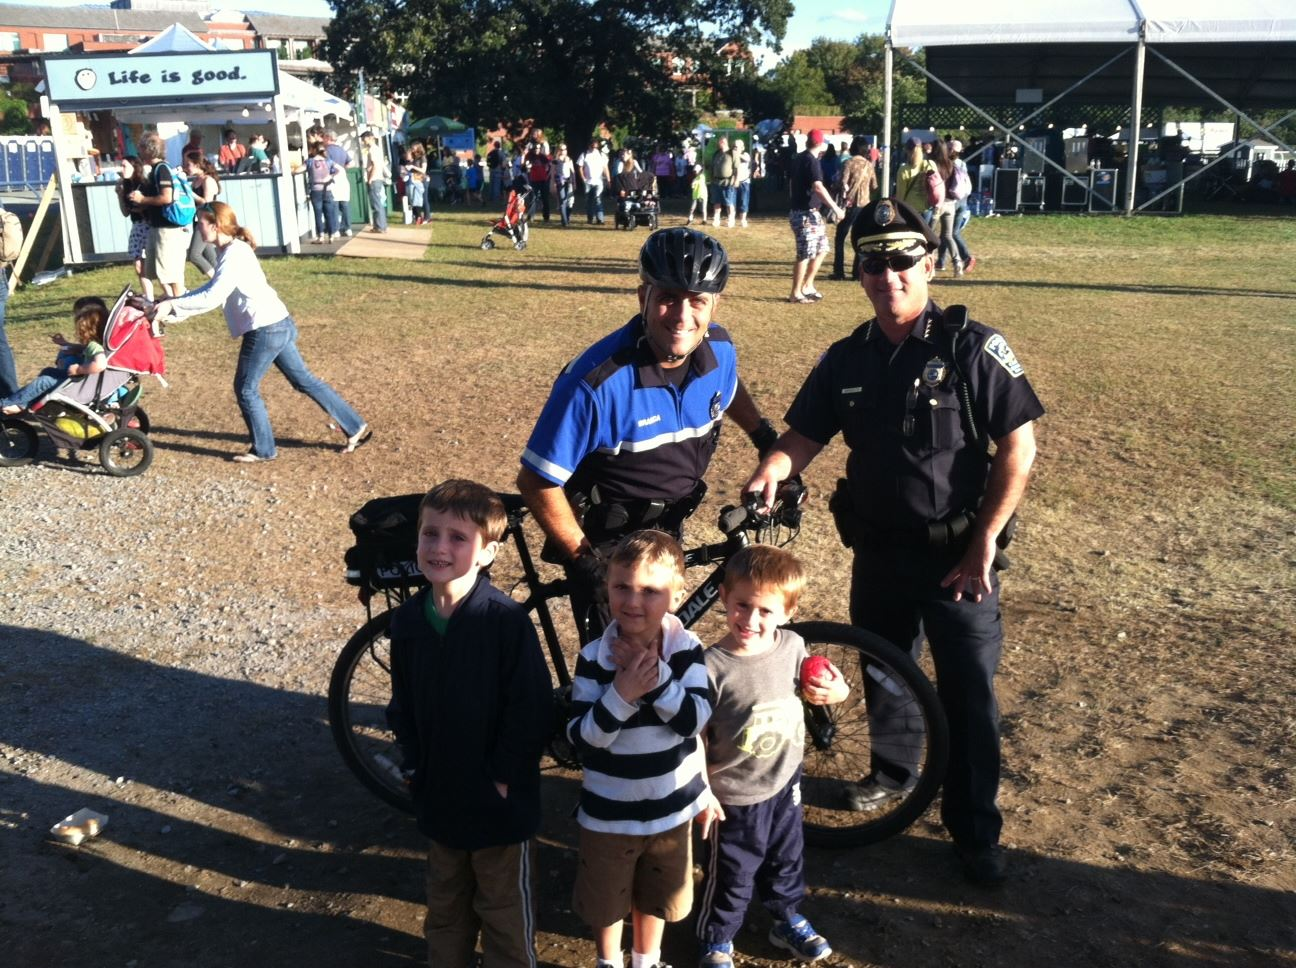 Two Police Officers Posing for a Photo With a Bike and a Few Kids